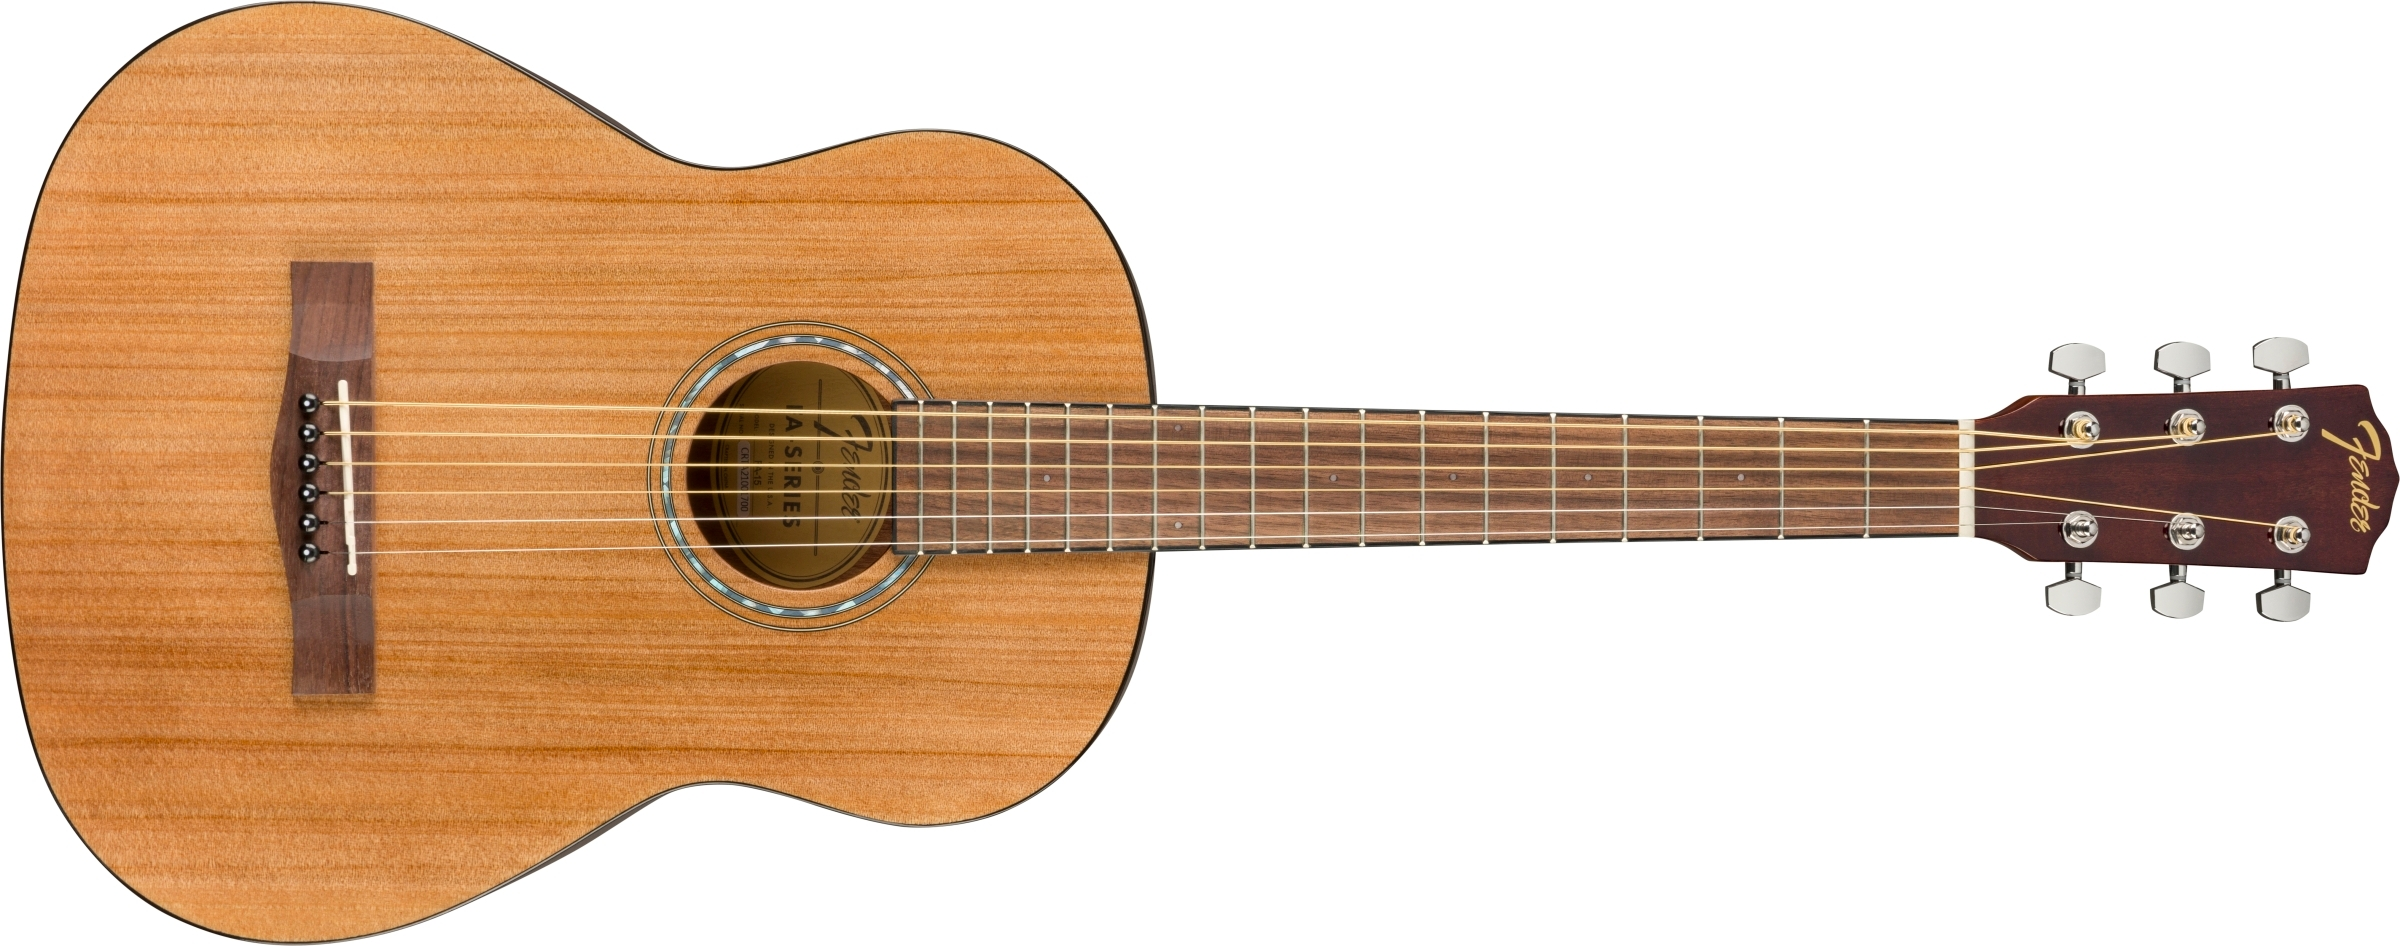 Image of Fender FA-15 3/4 Steel String Guitar Natural coming soon